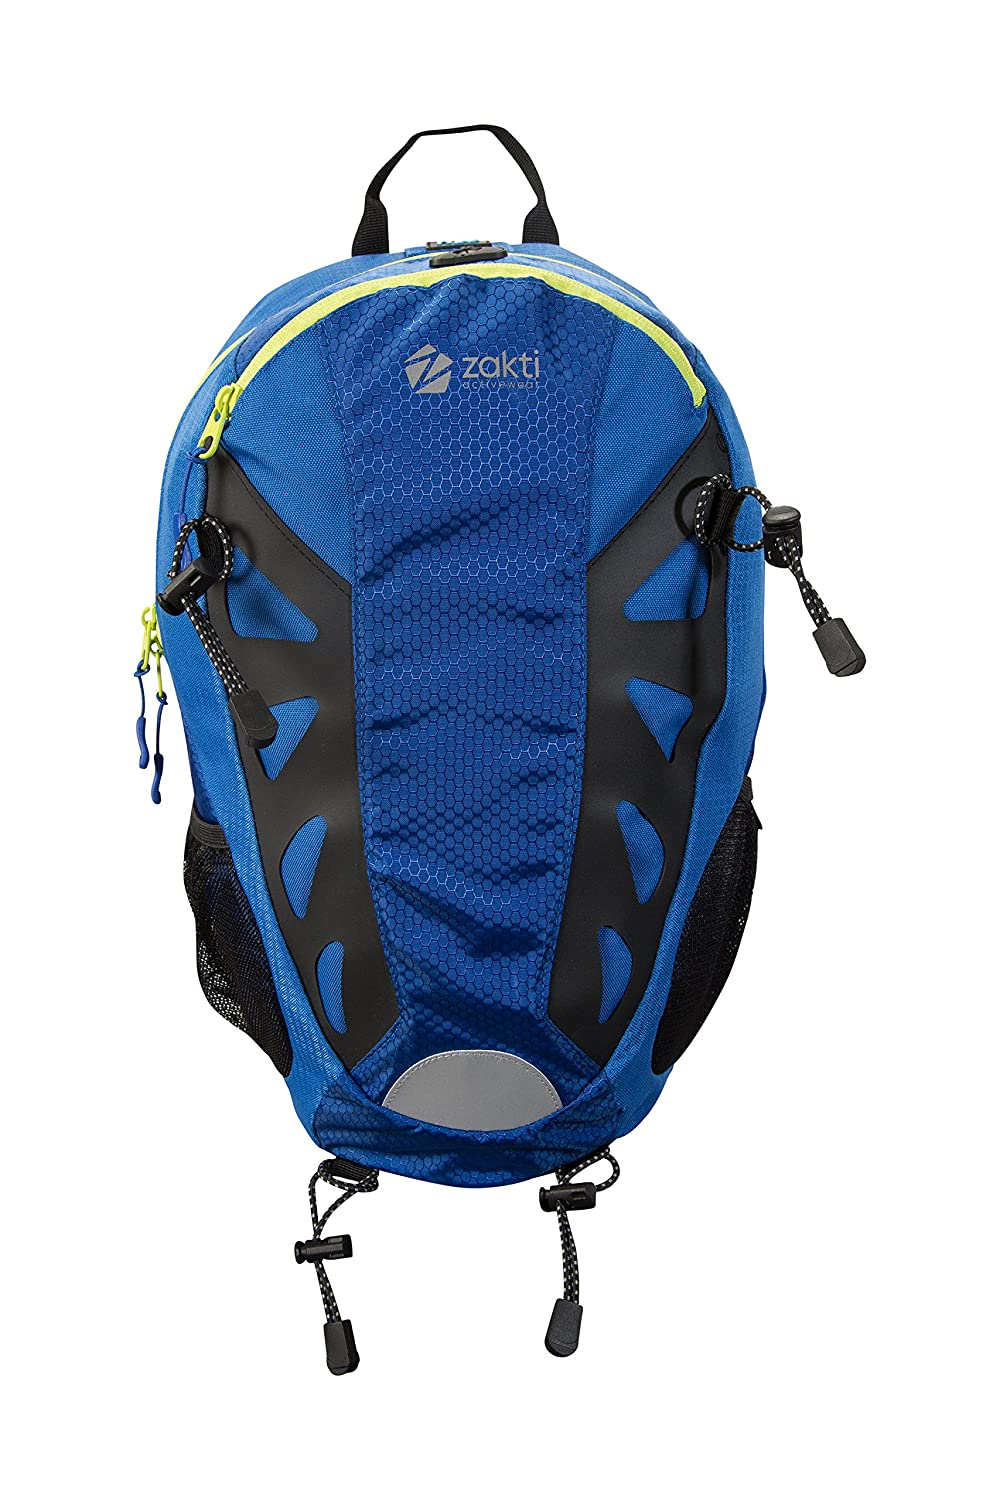 Mountain Warehouse Force Cycle 22l Hydroバッグ – High Vis Hydration Pack  ブルー B01GTNCHTS